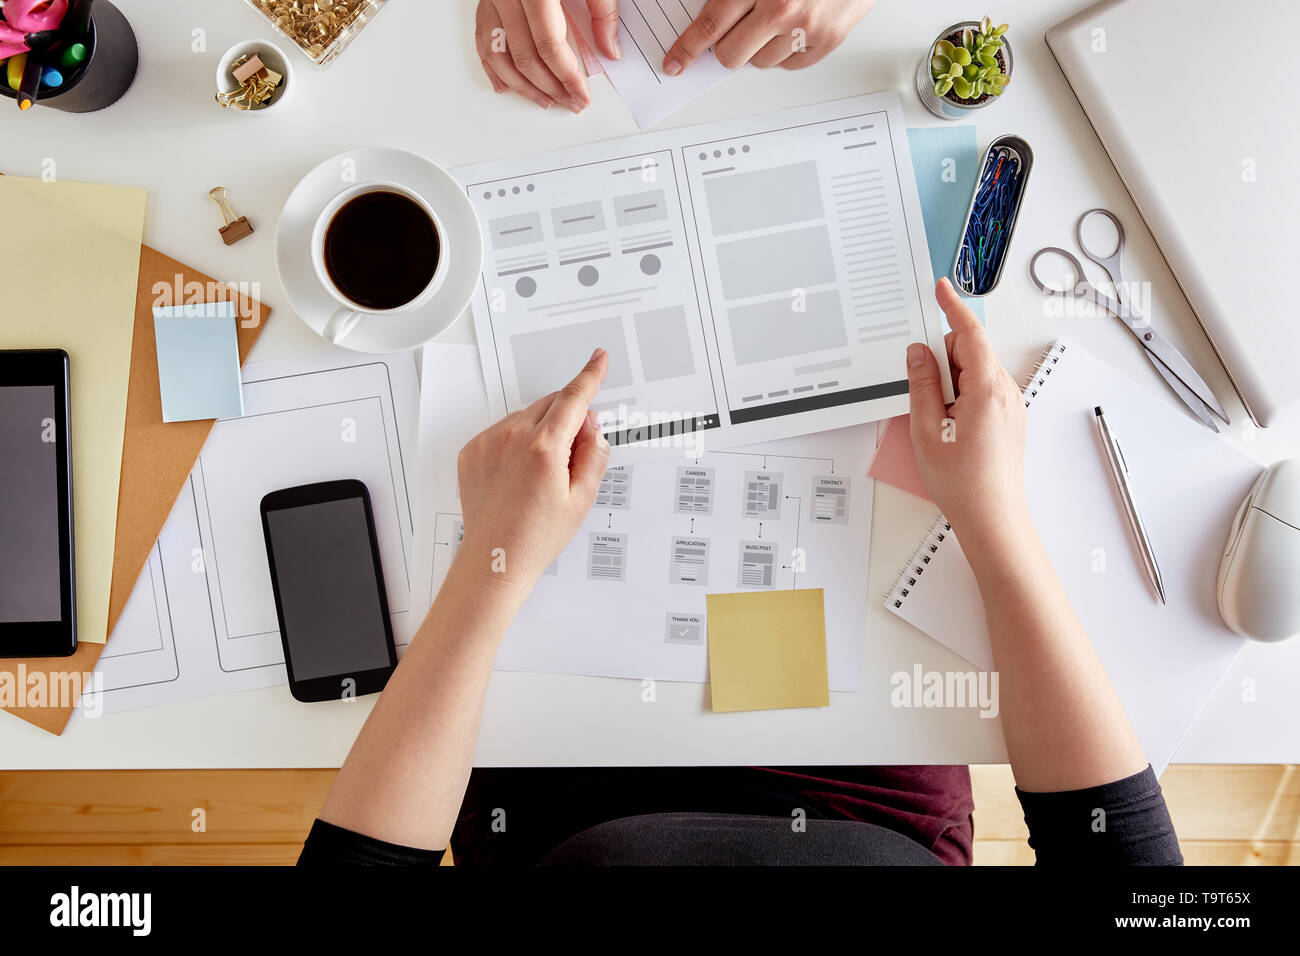 Overhead view of young UX designers planning out the structure of a website. Wireframing stage of a web design project - Stock Image